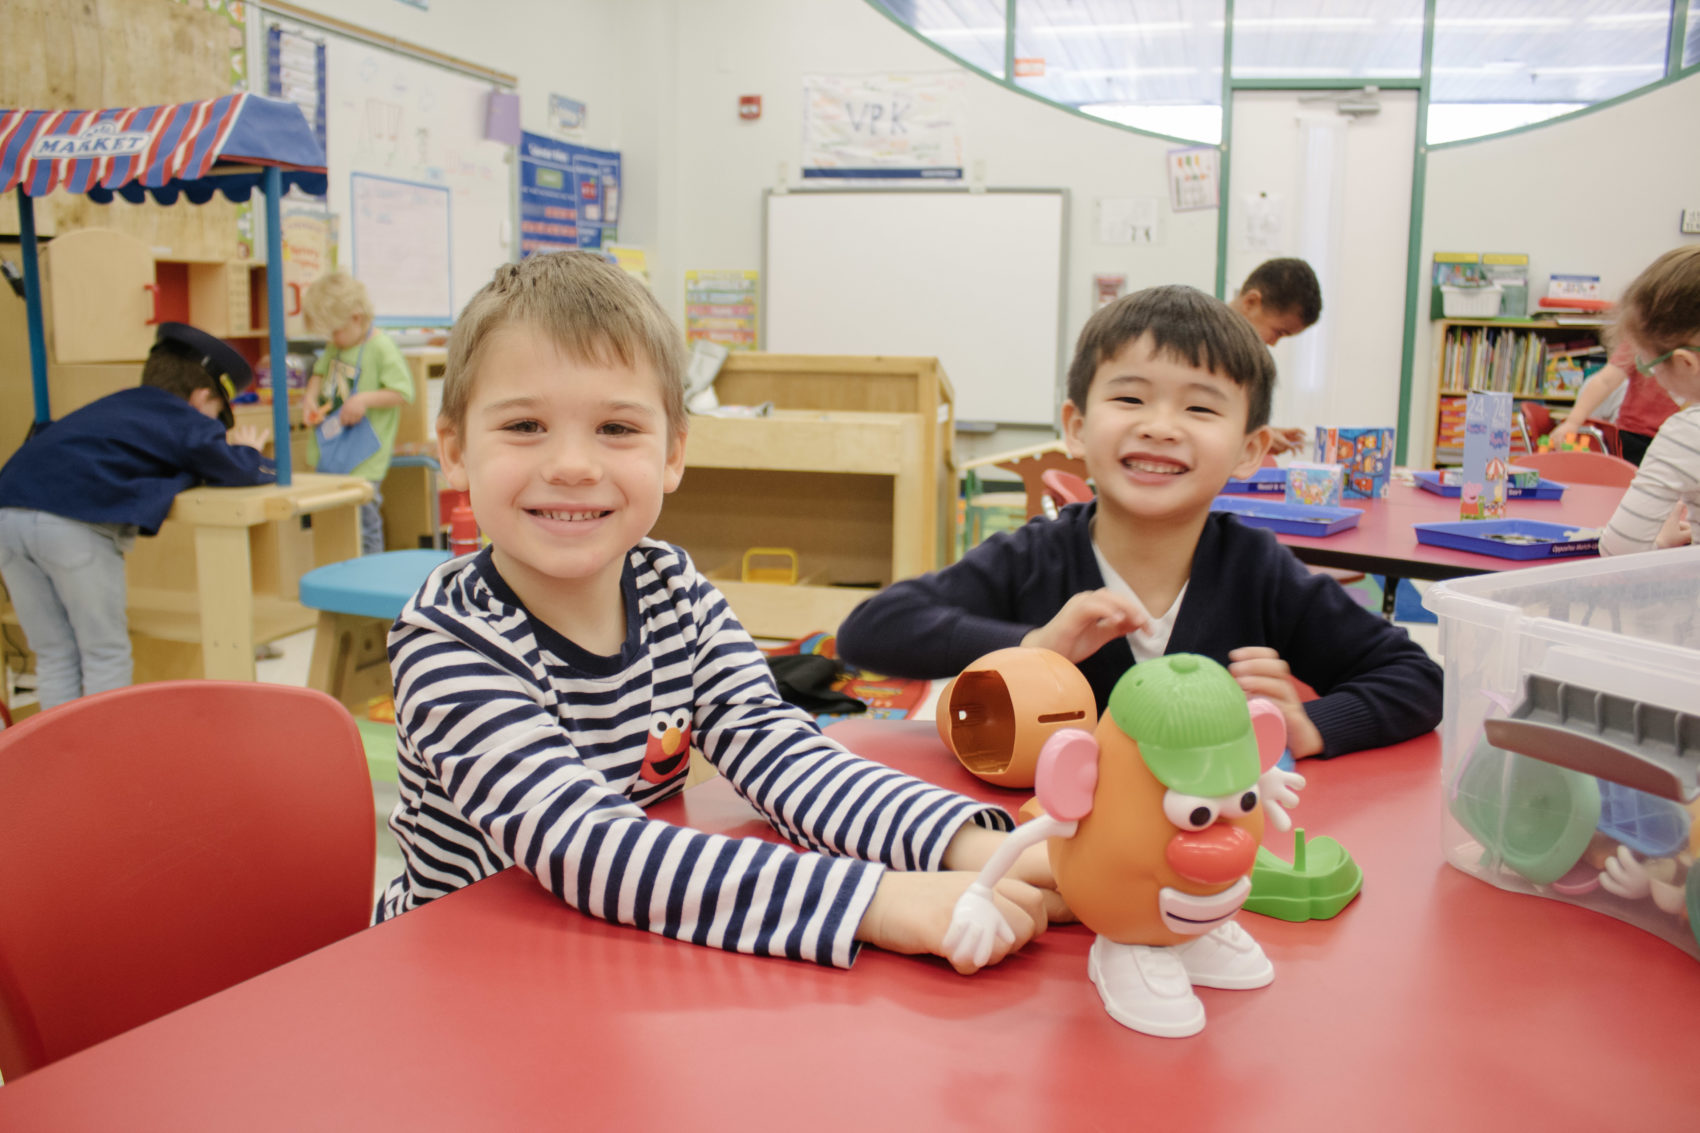 Two boys smile while playing with a Mr. Potato Head.